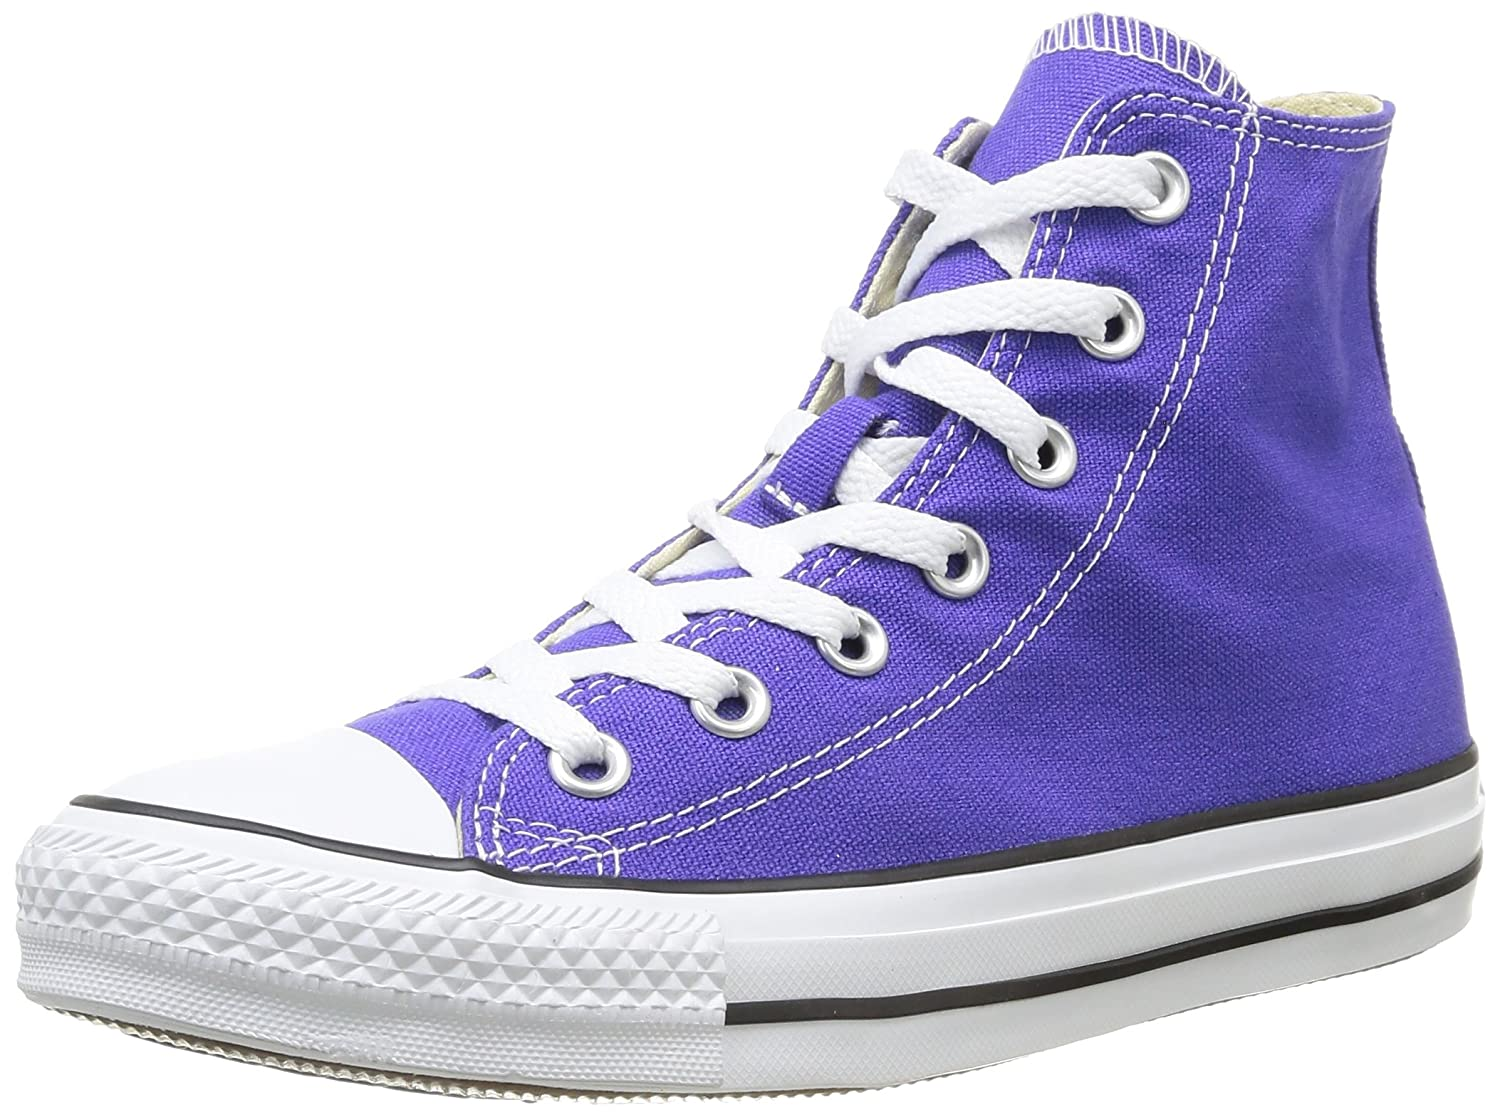 Converse Chuck Taylor All Taylor Star B07689YHR9 Hi, Baskets mode Converse mixte adulte Viola (Periwinkle) 3a5541c - reprogrammed.space